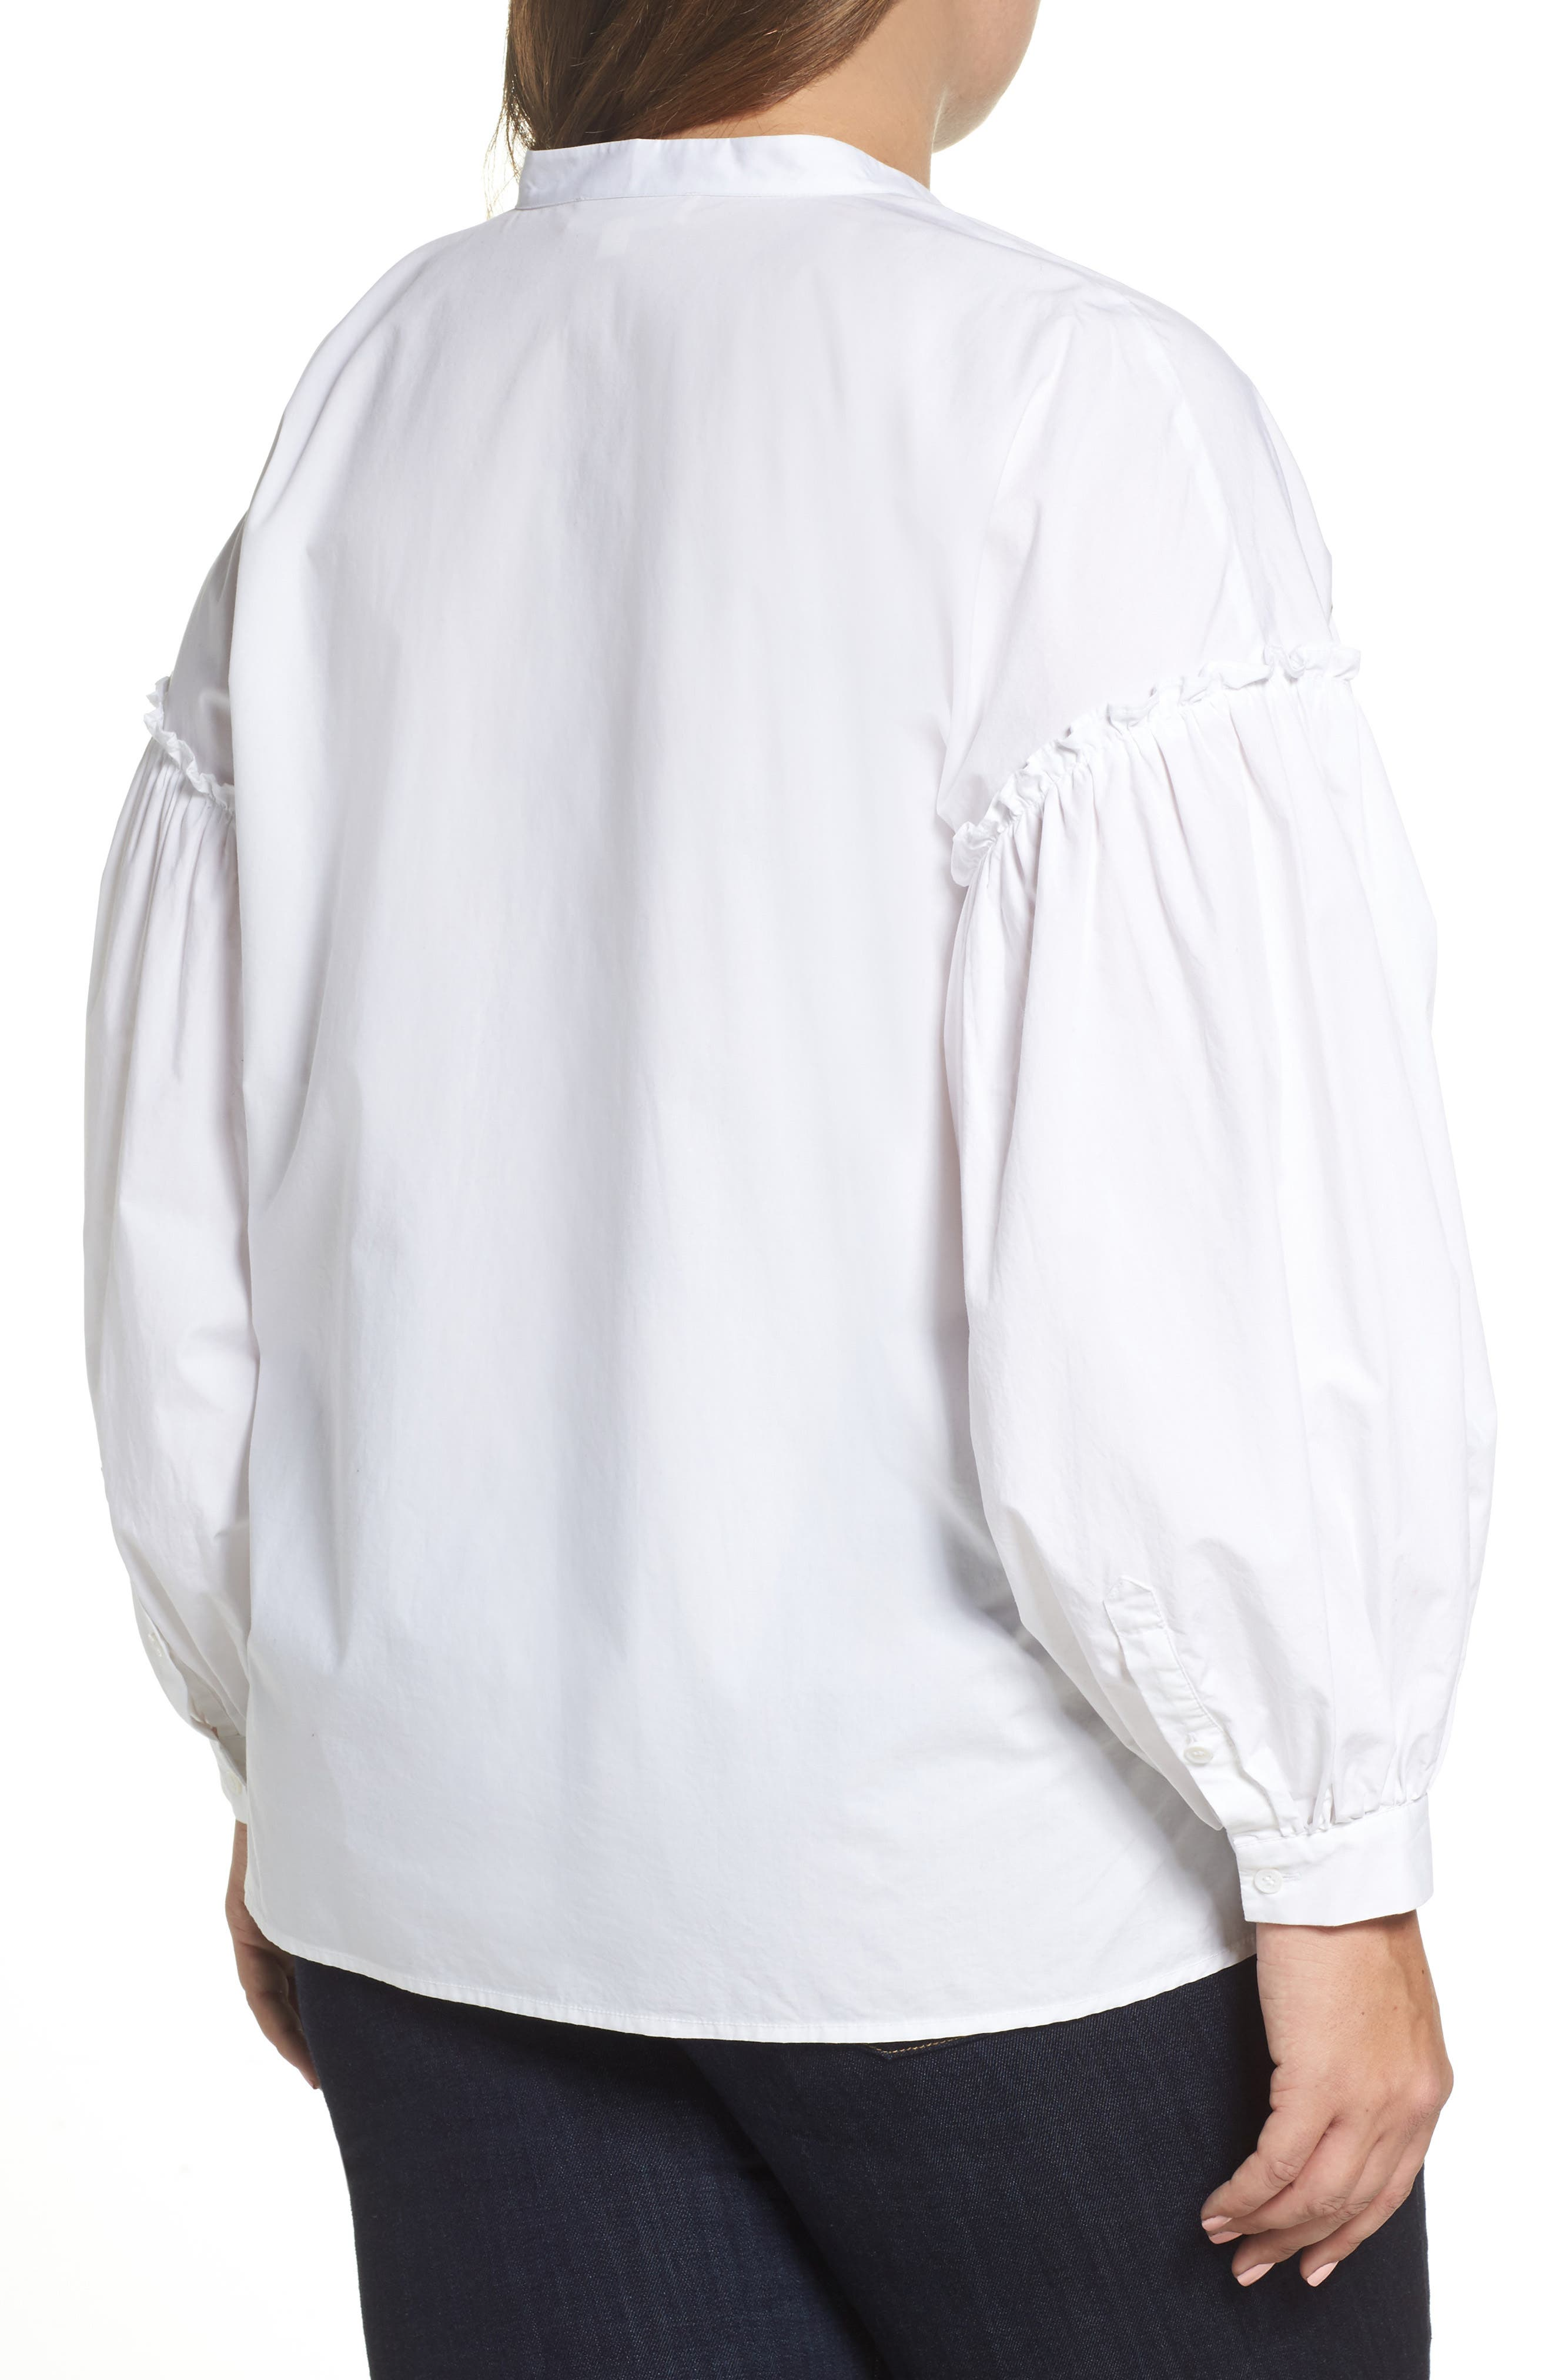 Embroidered Bubble Sleeve Blouse,                             Alternate thumbnail 2, color,                             145